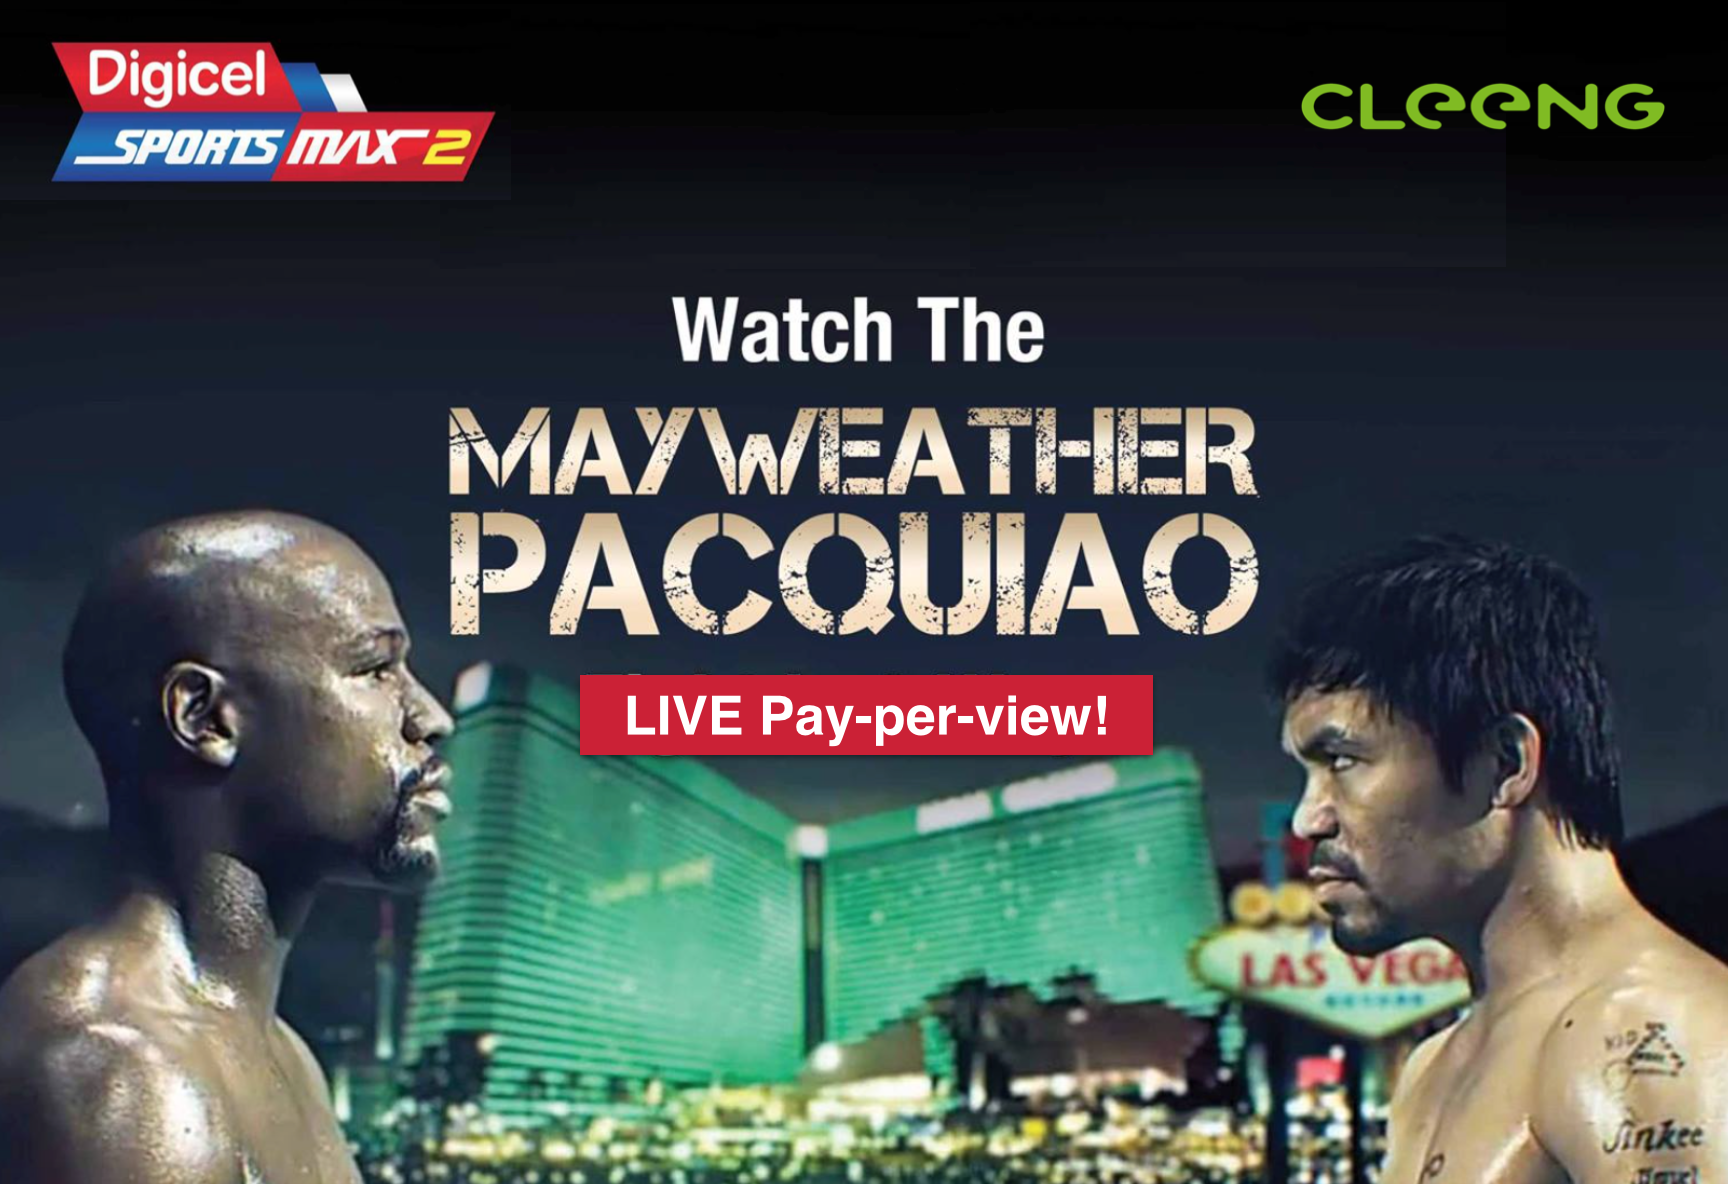 Mayweather Pacquiao pay per view powered by Cleeng